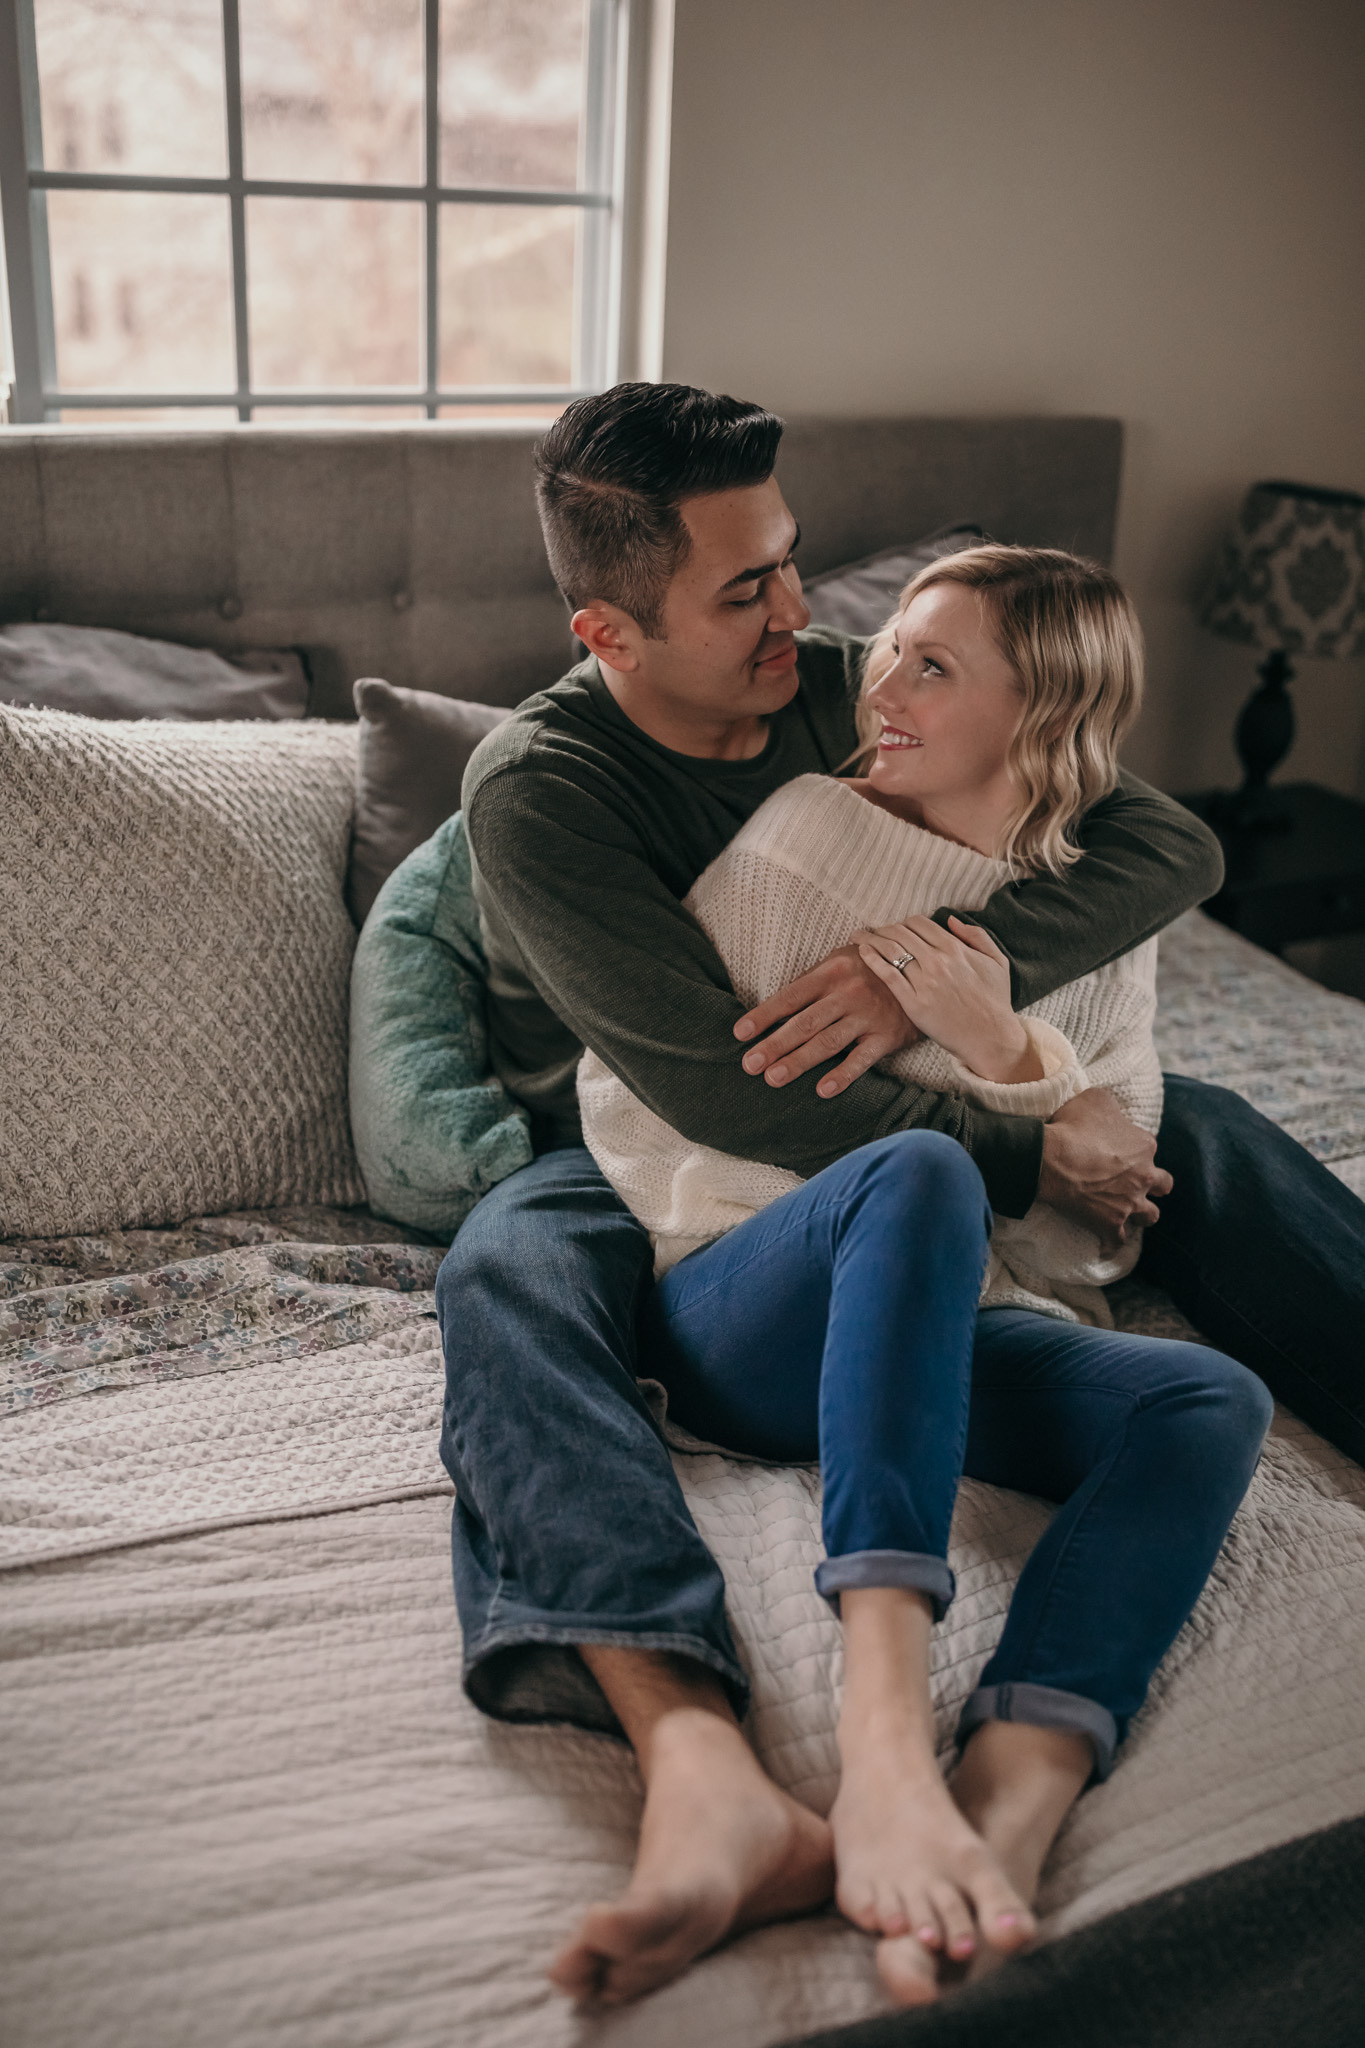 Couple embracing sitting on bed